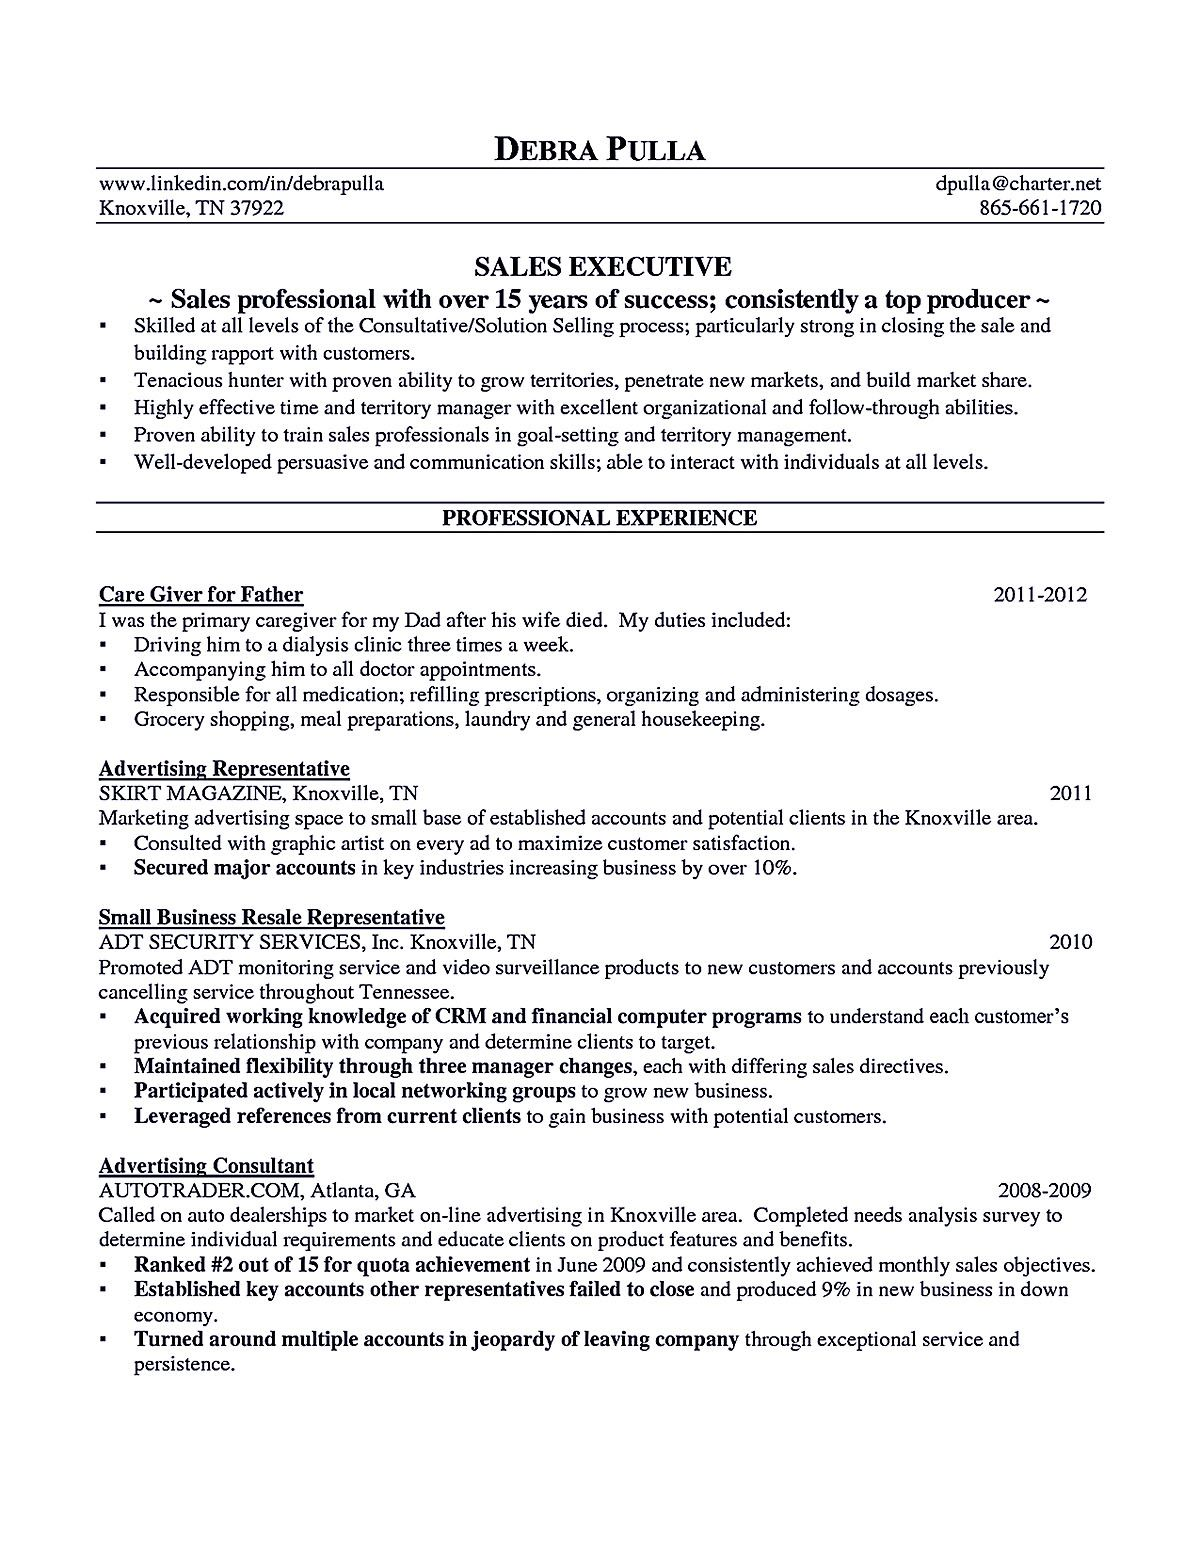 account executive resume is like your weapon to get the